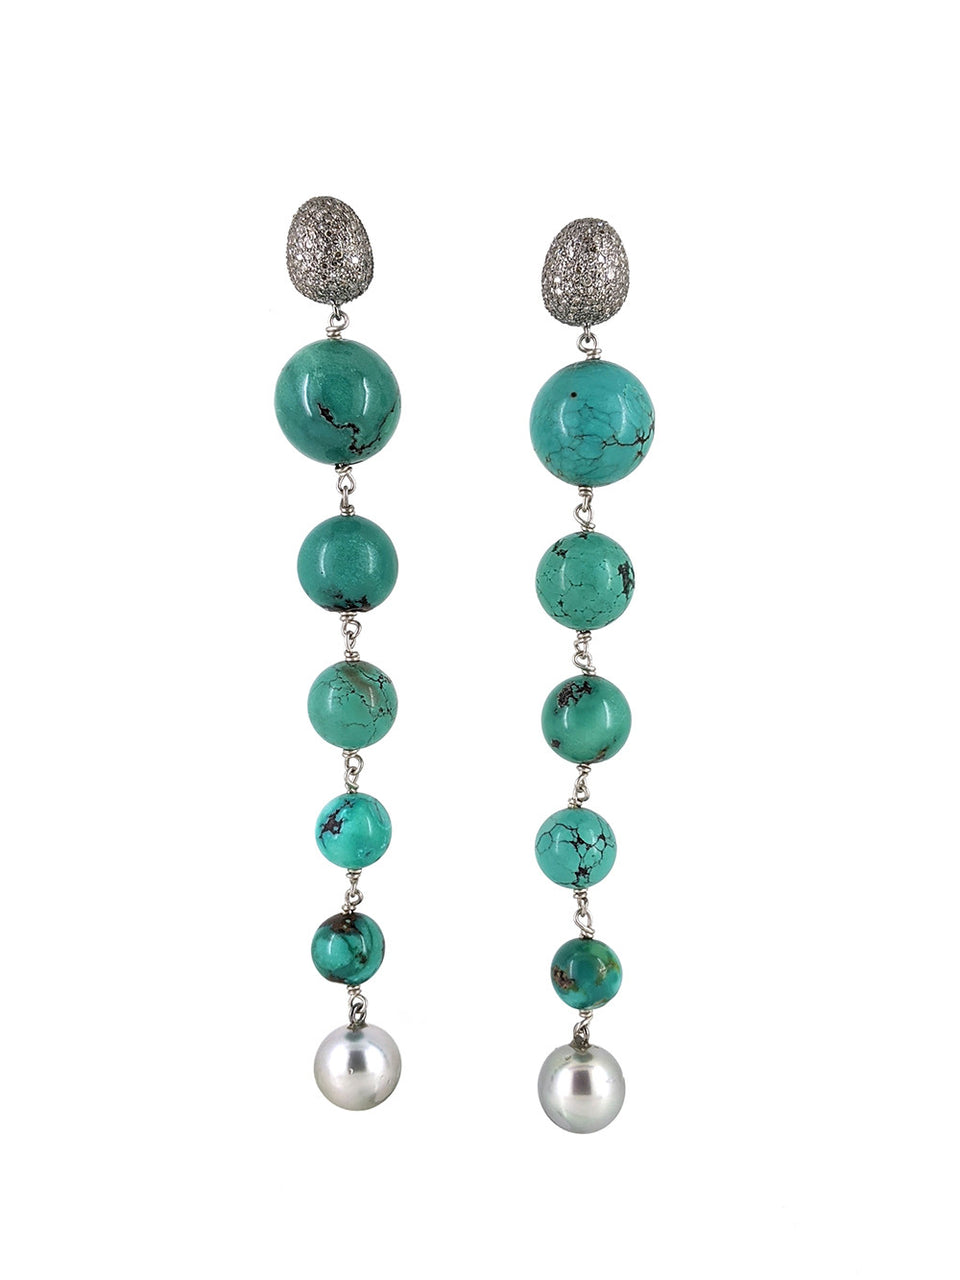 Turquoise and Precious Pearl Long Drop Earrings